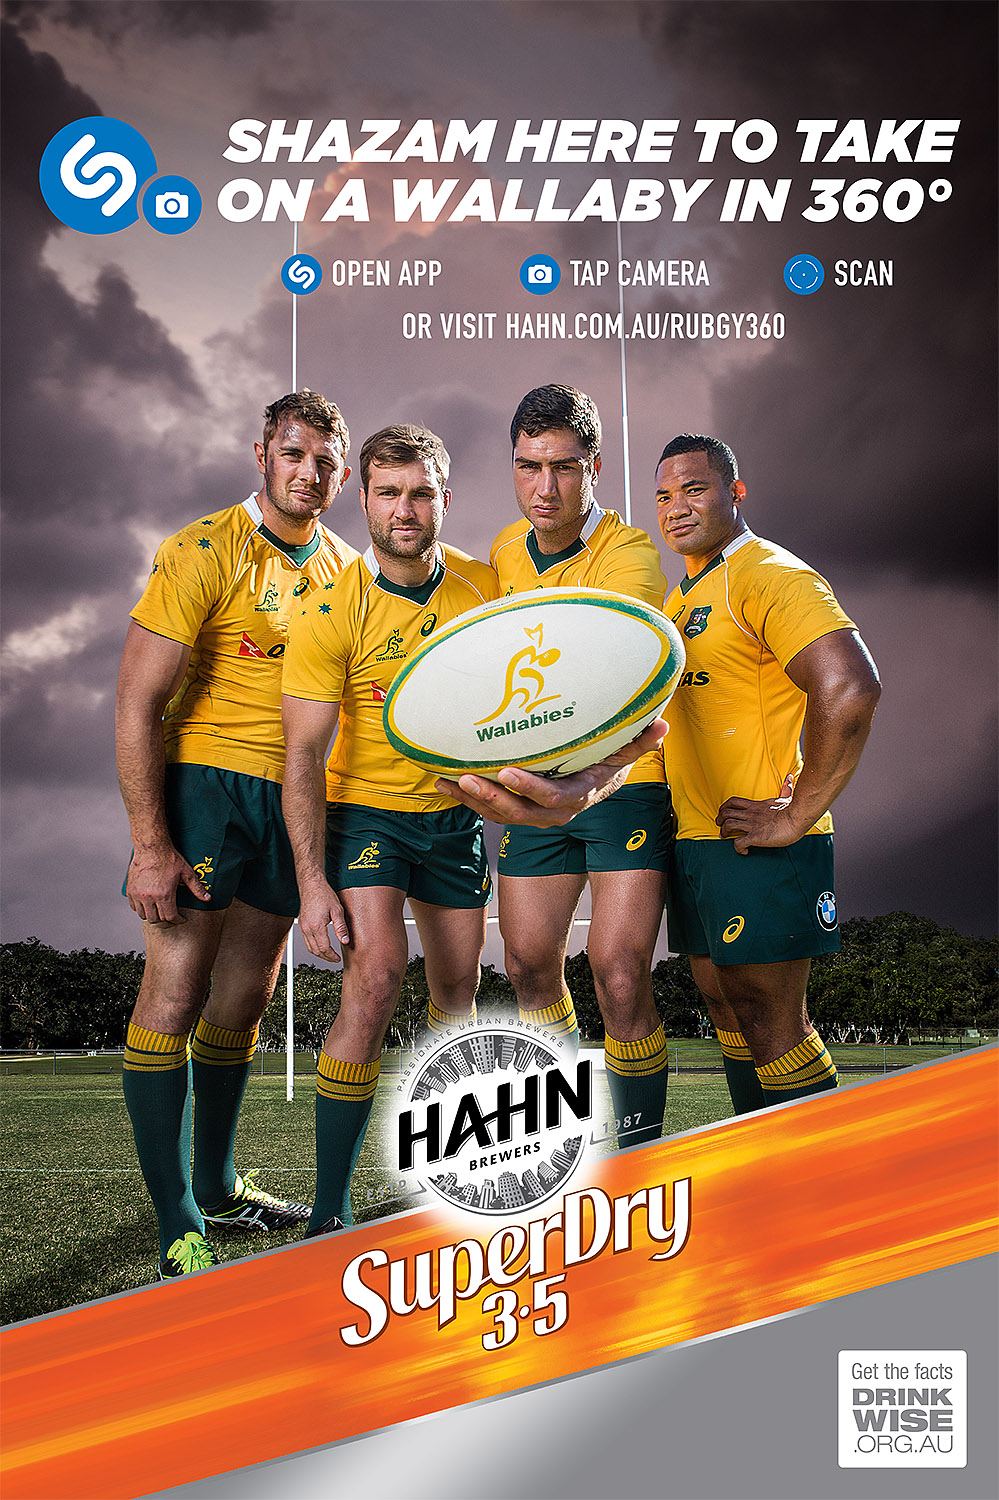 Hahn: Take on a Wallaby Promotion